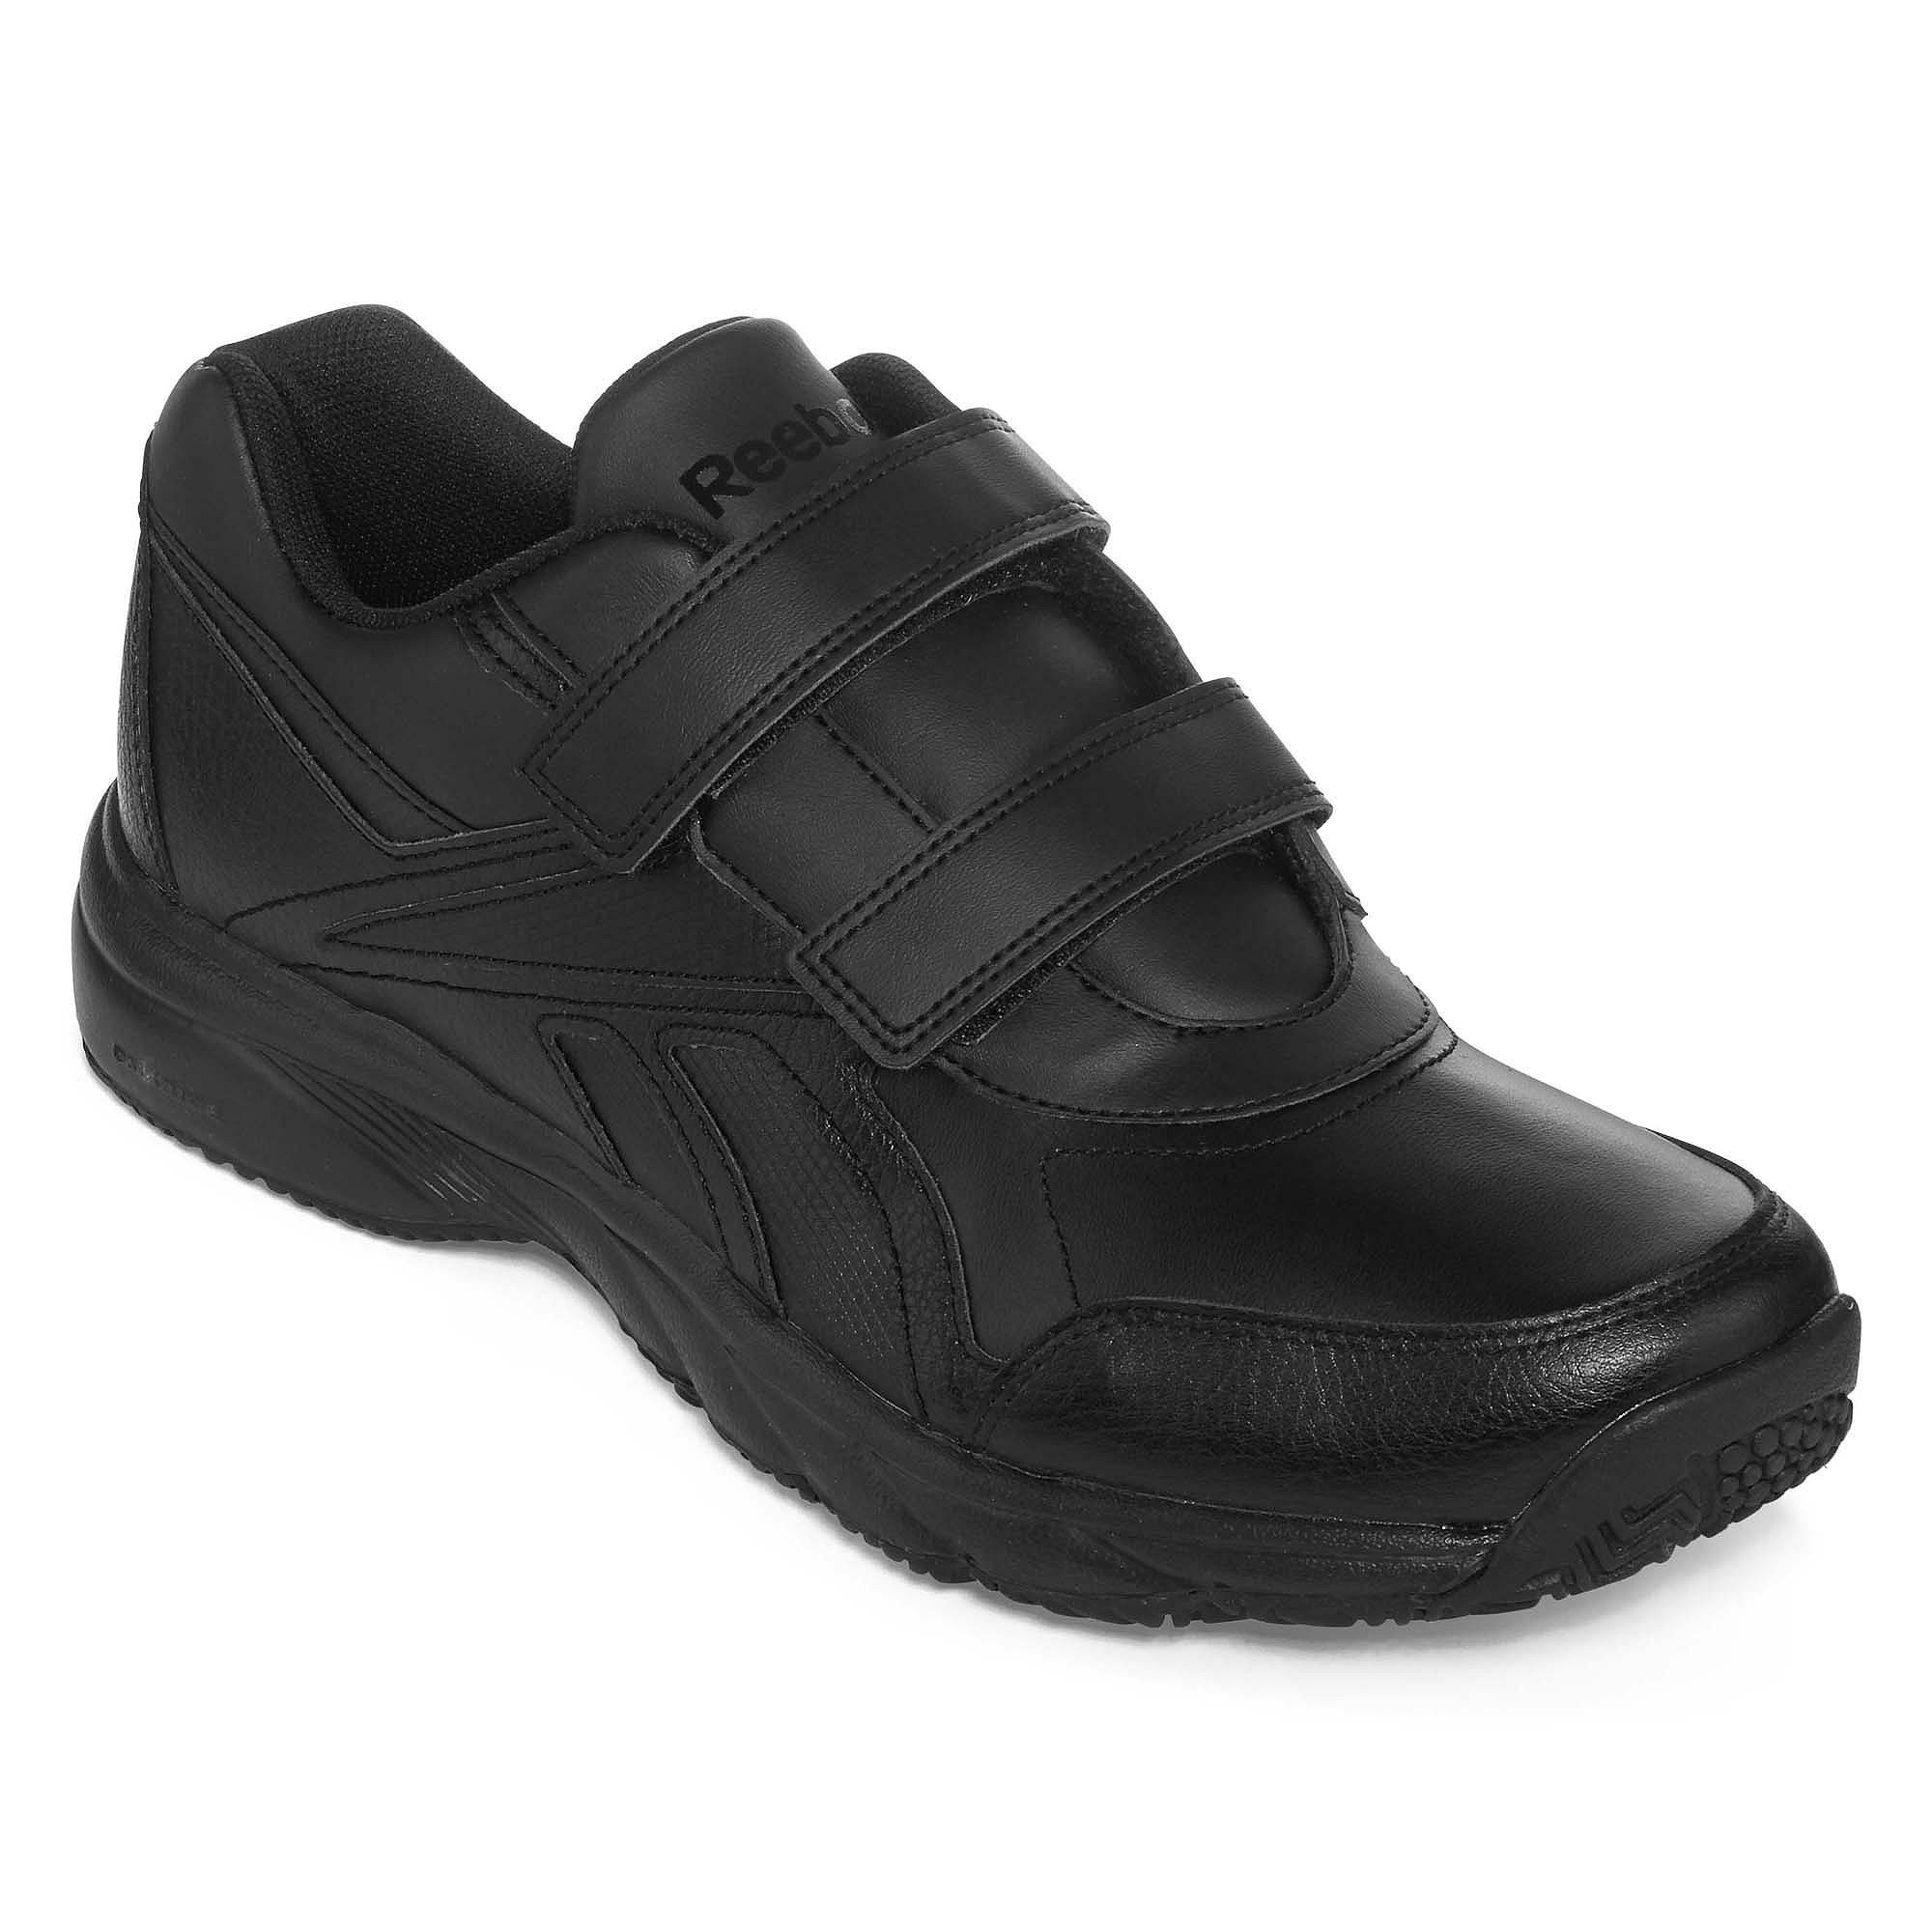 UPC 889133133935. ZOOM. UPC 889133133935 has following Product Name  Variations  Reebok Work  n Cushion Kc 2.0 Black Black Mens Walking Shoe ... f4f4ff5bb